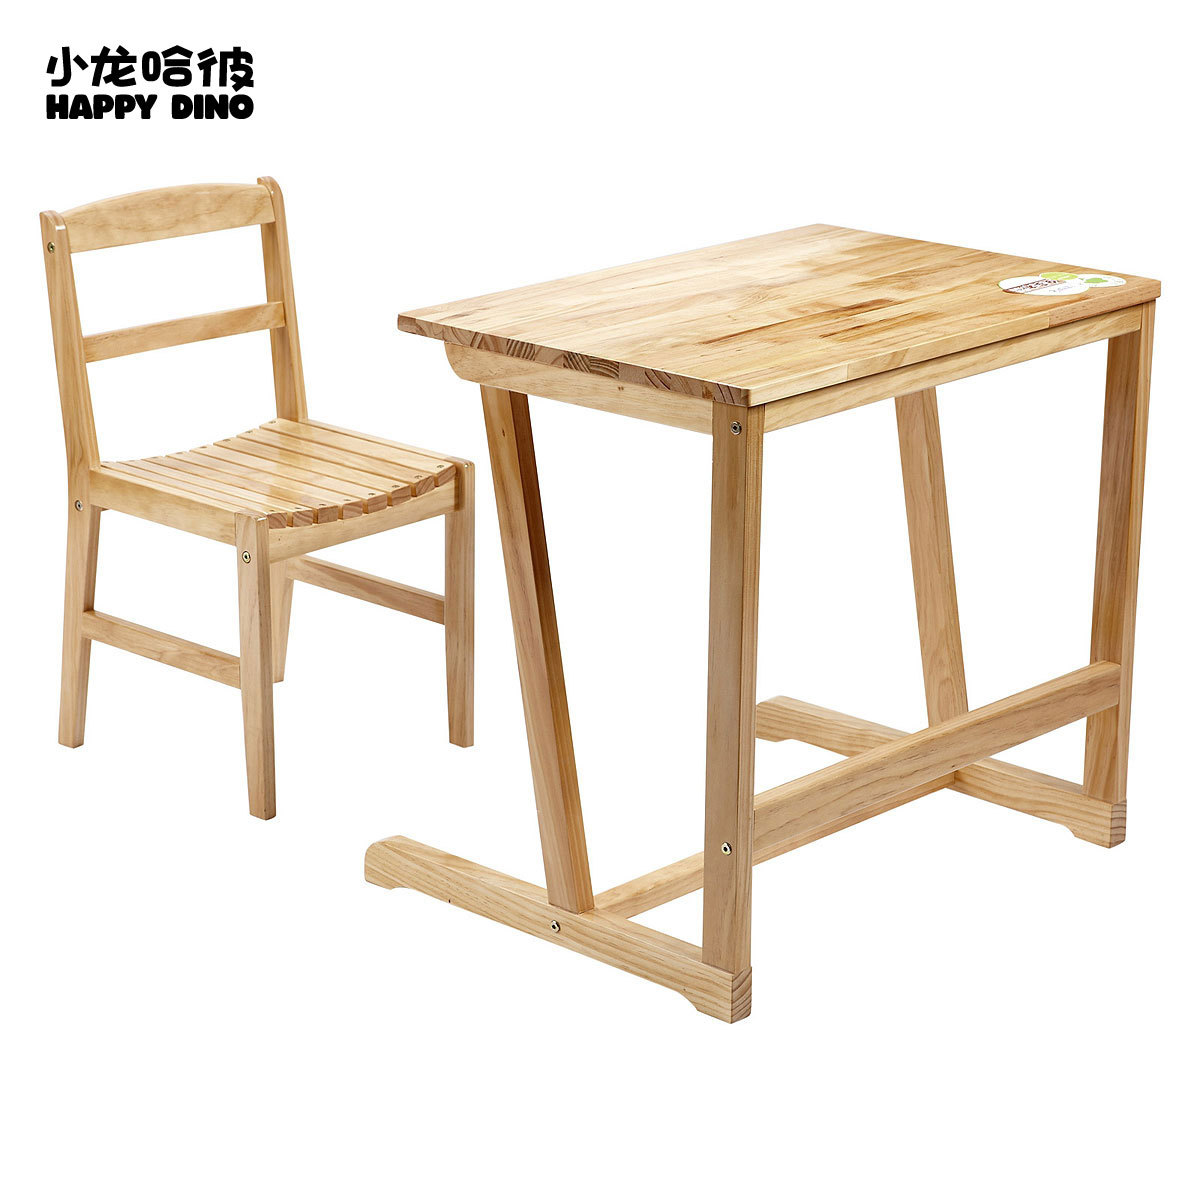 Hananel dharmakara crong dining chair multifunctional lms600 dining chair desk pine dining chair child dining chair(China (Mainland))